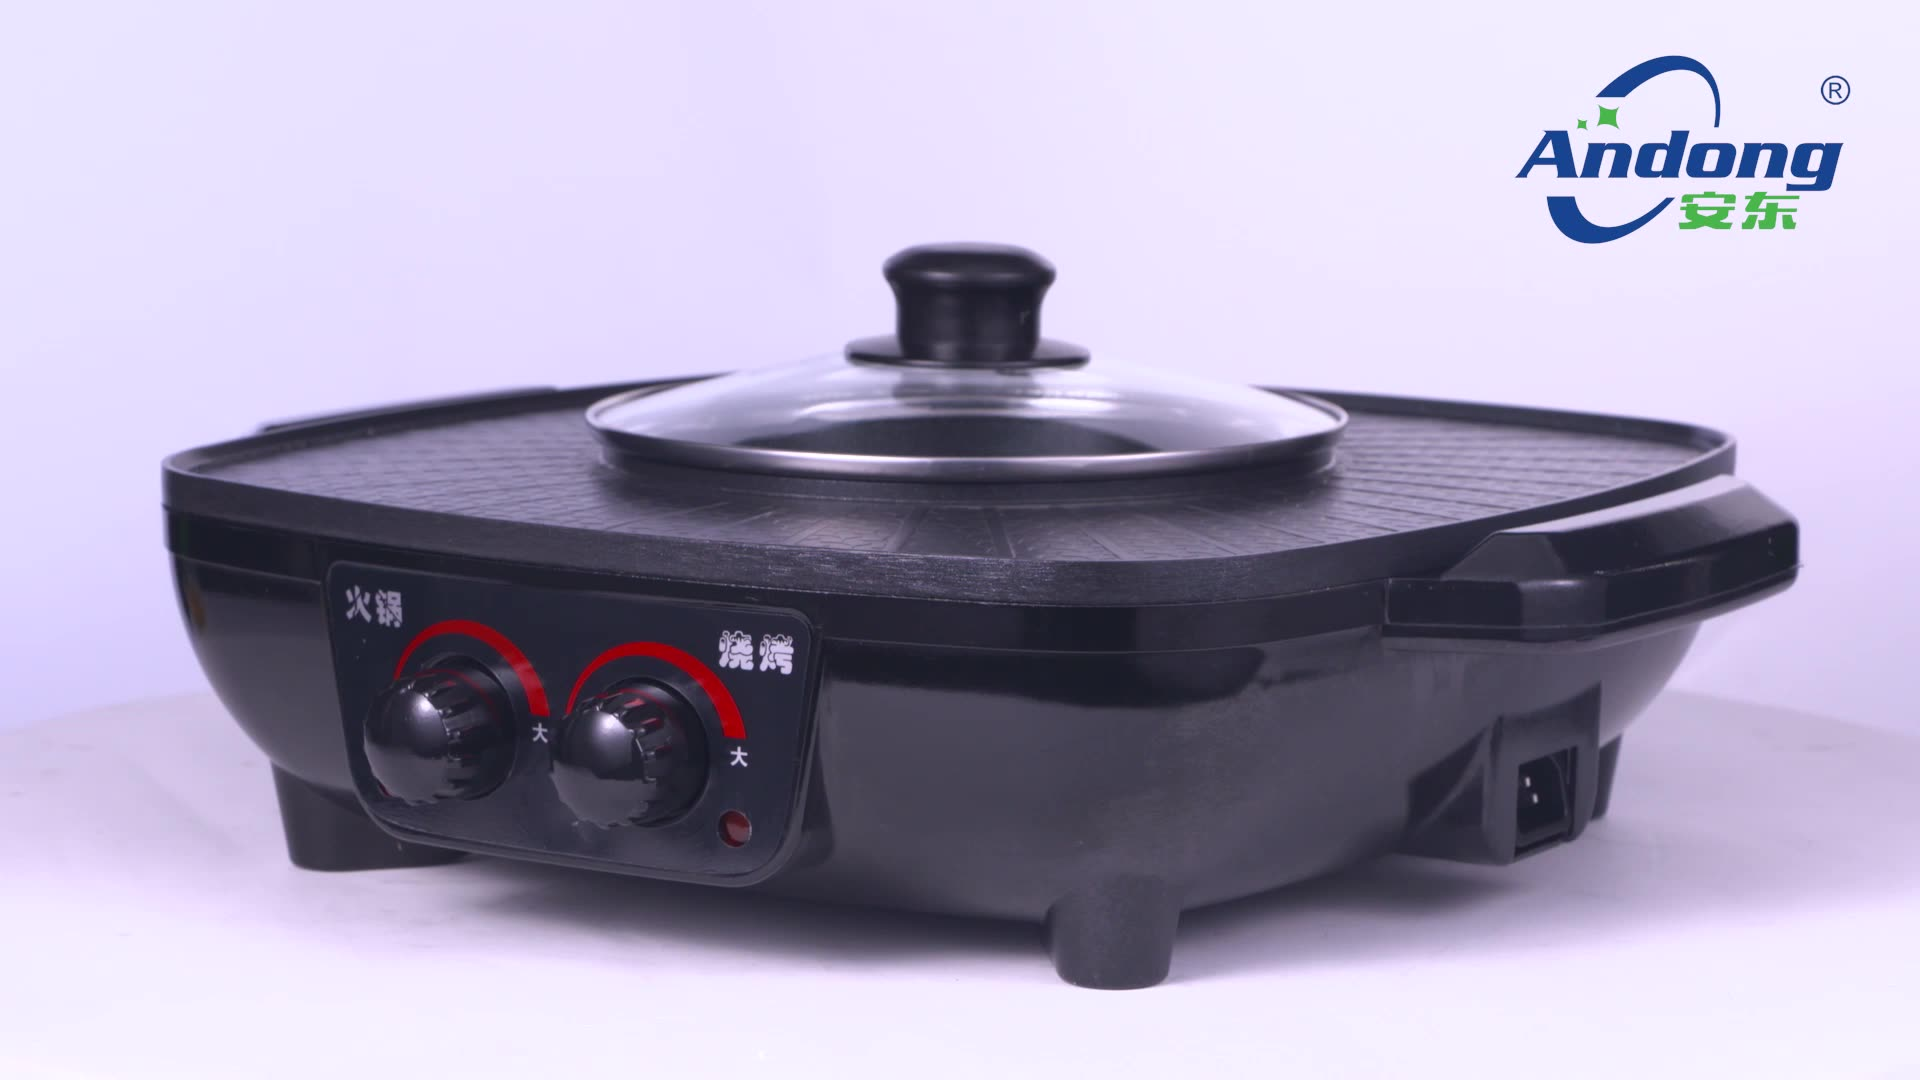 New korean bbq square 2 in 1 electric griller smokeless grill pan with hot pot electric hotpot grill machine